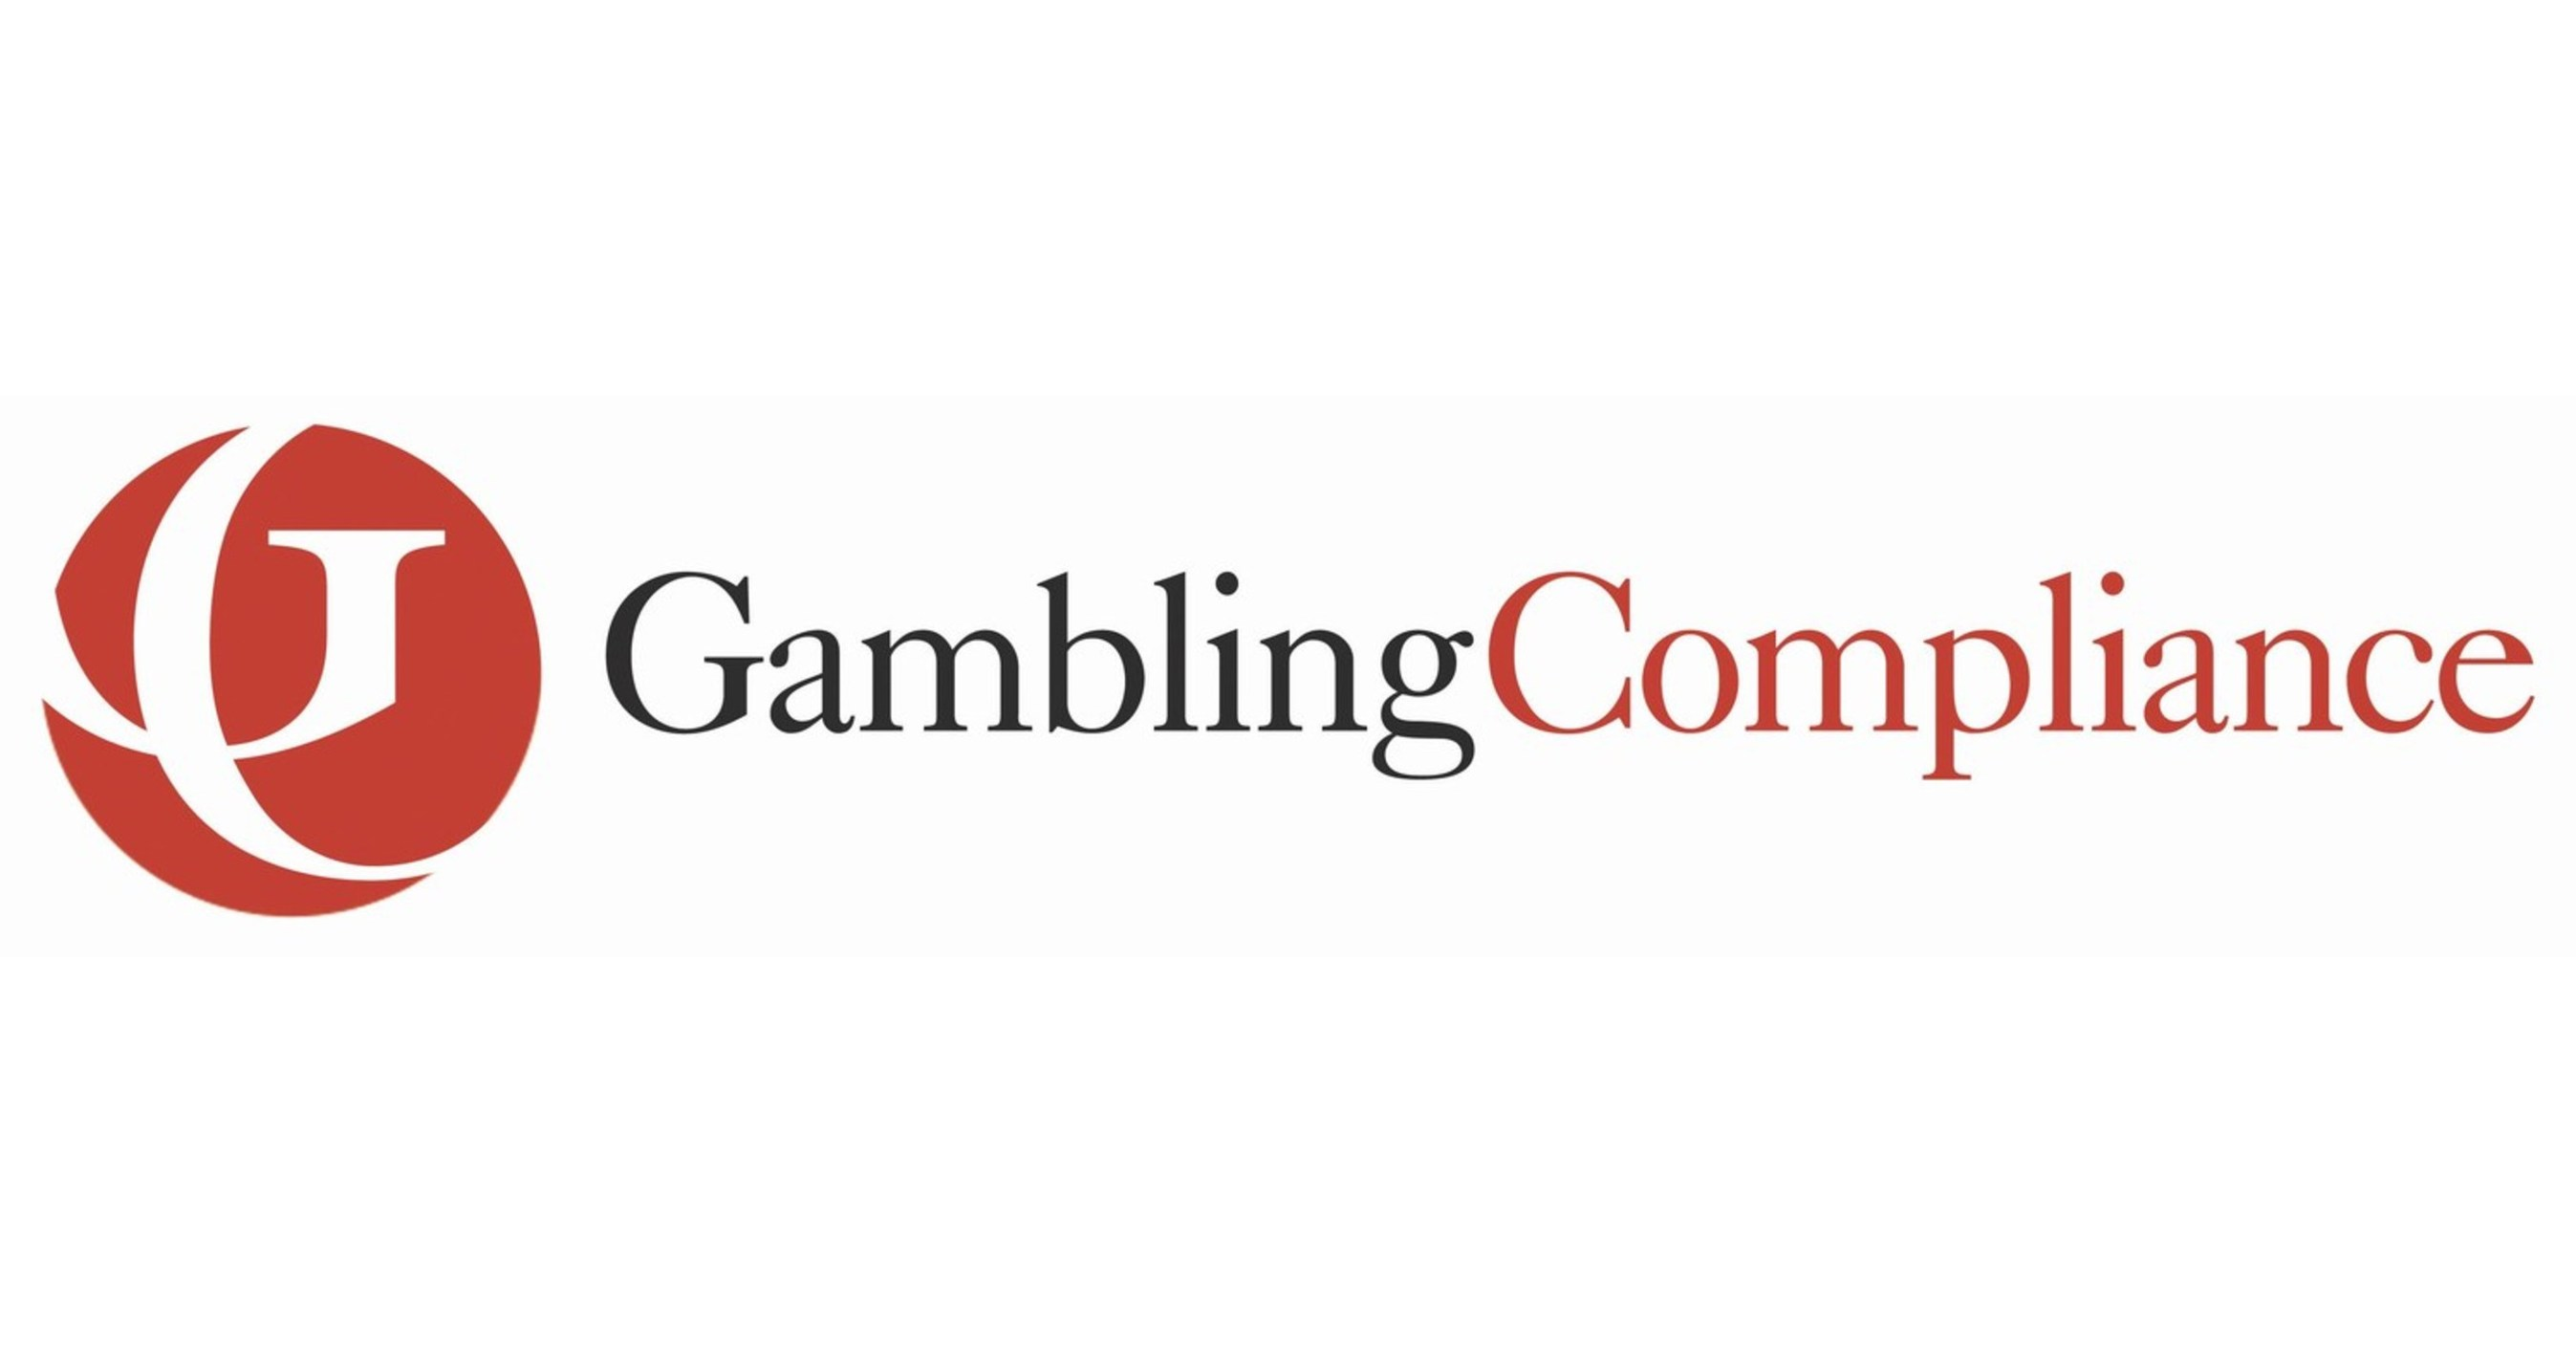 Regulatory Woes to Weigh on UK Online Gambling Growth, Says New Report From GamblingCompliance